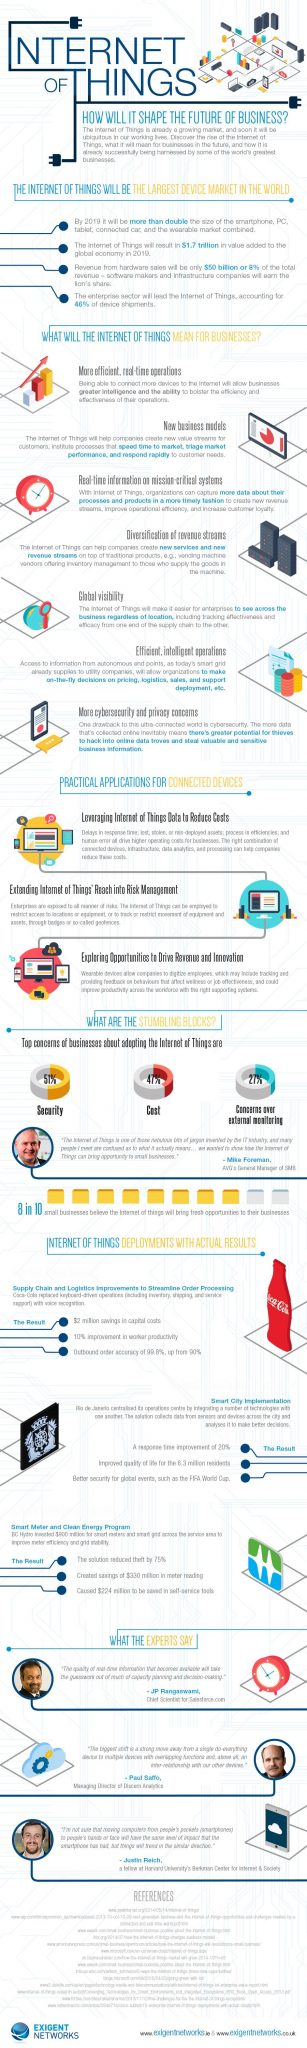 Internet-of-Things-for-Business-Infographic